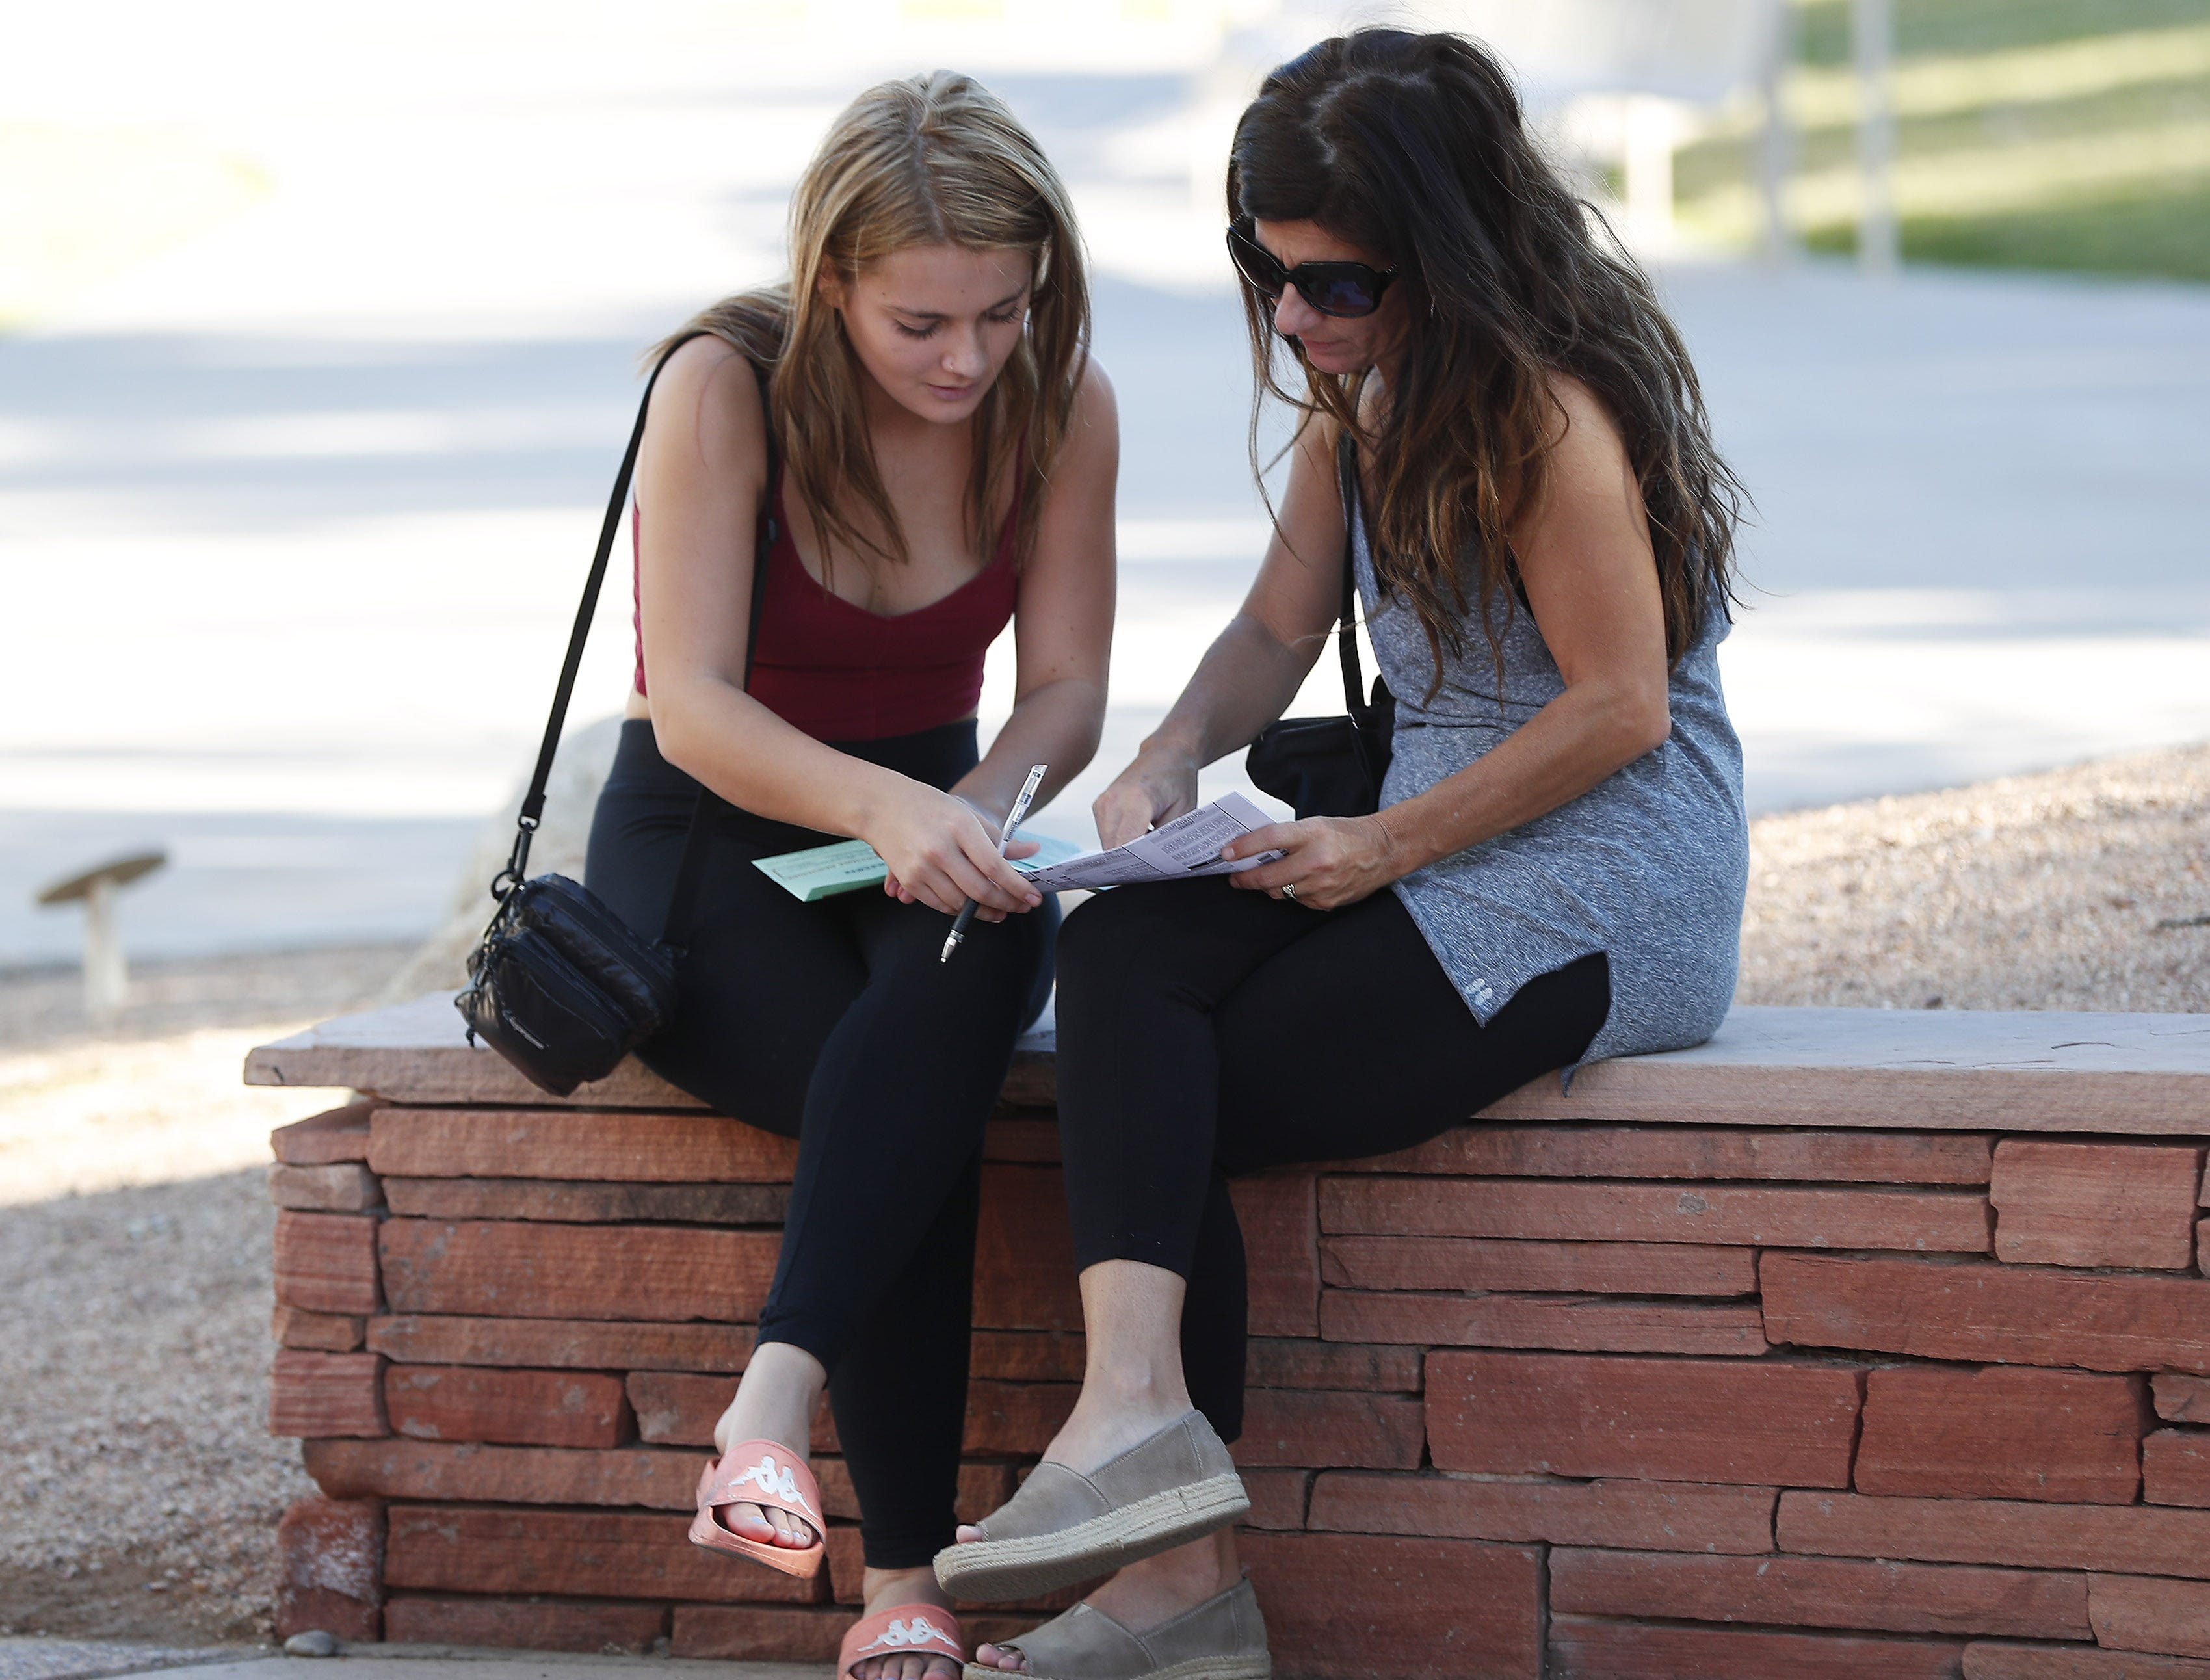 Eve Beresford, 18, gets help filling out her early ballot from her mom, Celia, outside a polling station at the Tempe History Museum in Arizona on Nov. 6, 2018.